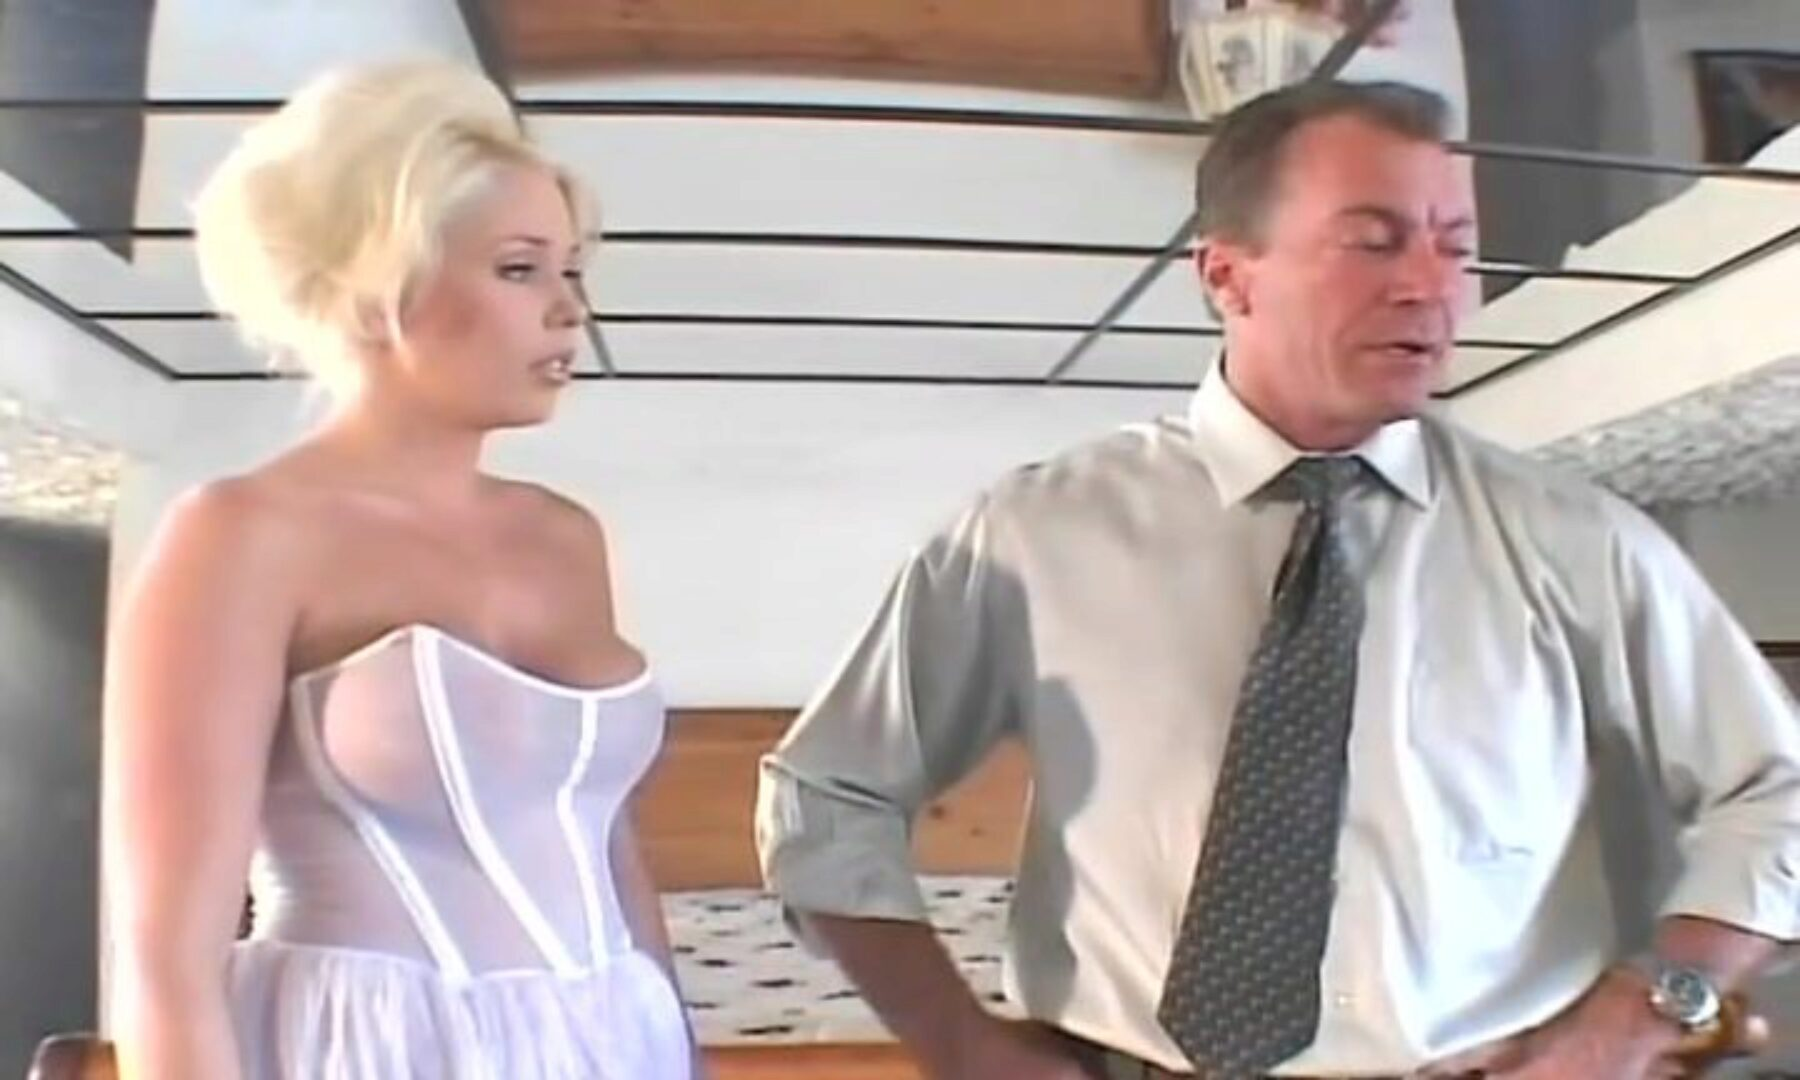 Father-in-law to Be Tries Out Horney Bride - Free Porn Videos - YouPorn Watch Father-in-law to be attempts out horney bride online on YouPorn.com. YouPorn is the biggest Anal porno clip web resource with the best selection of free-for-all high quality videos Enjoy our HD porn movies on any instrument of your choosing!